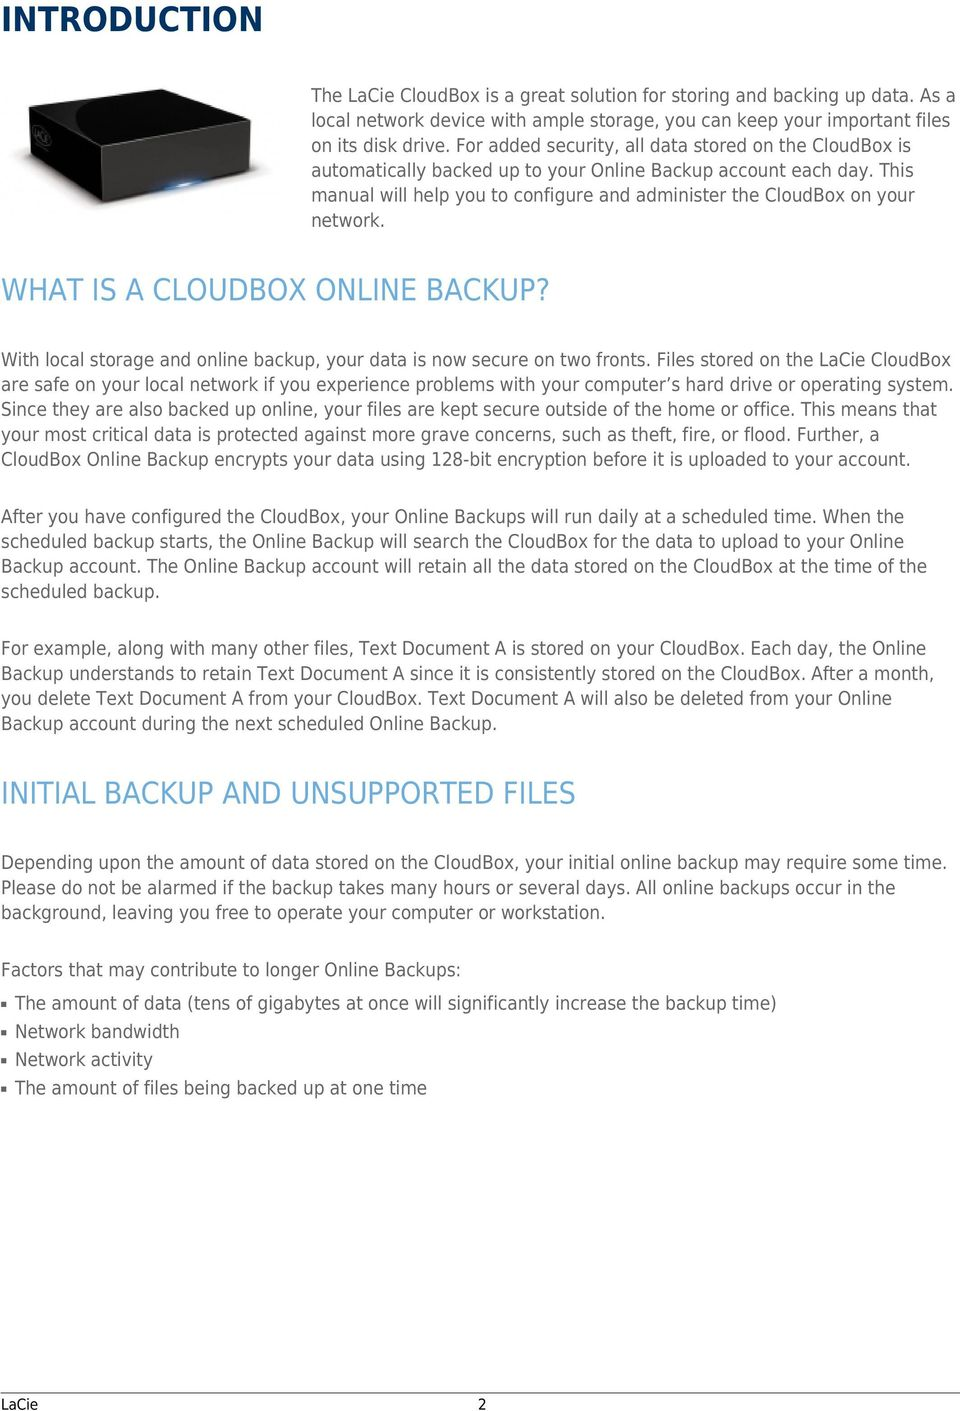 This manual will help you to configure and administer the CloudBox on your network. WHAT IS A CLOUDBOX ONLINE BACKUP? With local storage and online backup, your data is now secure on two fronts.